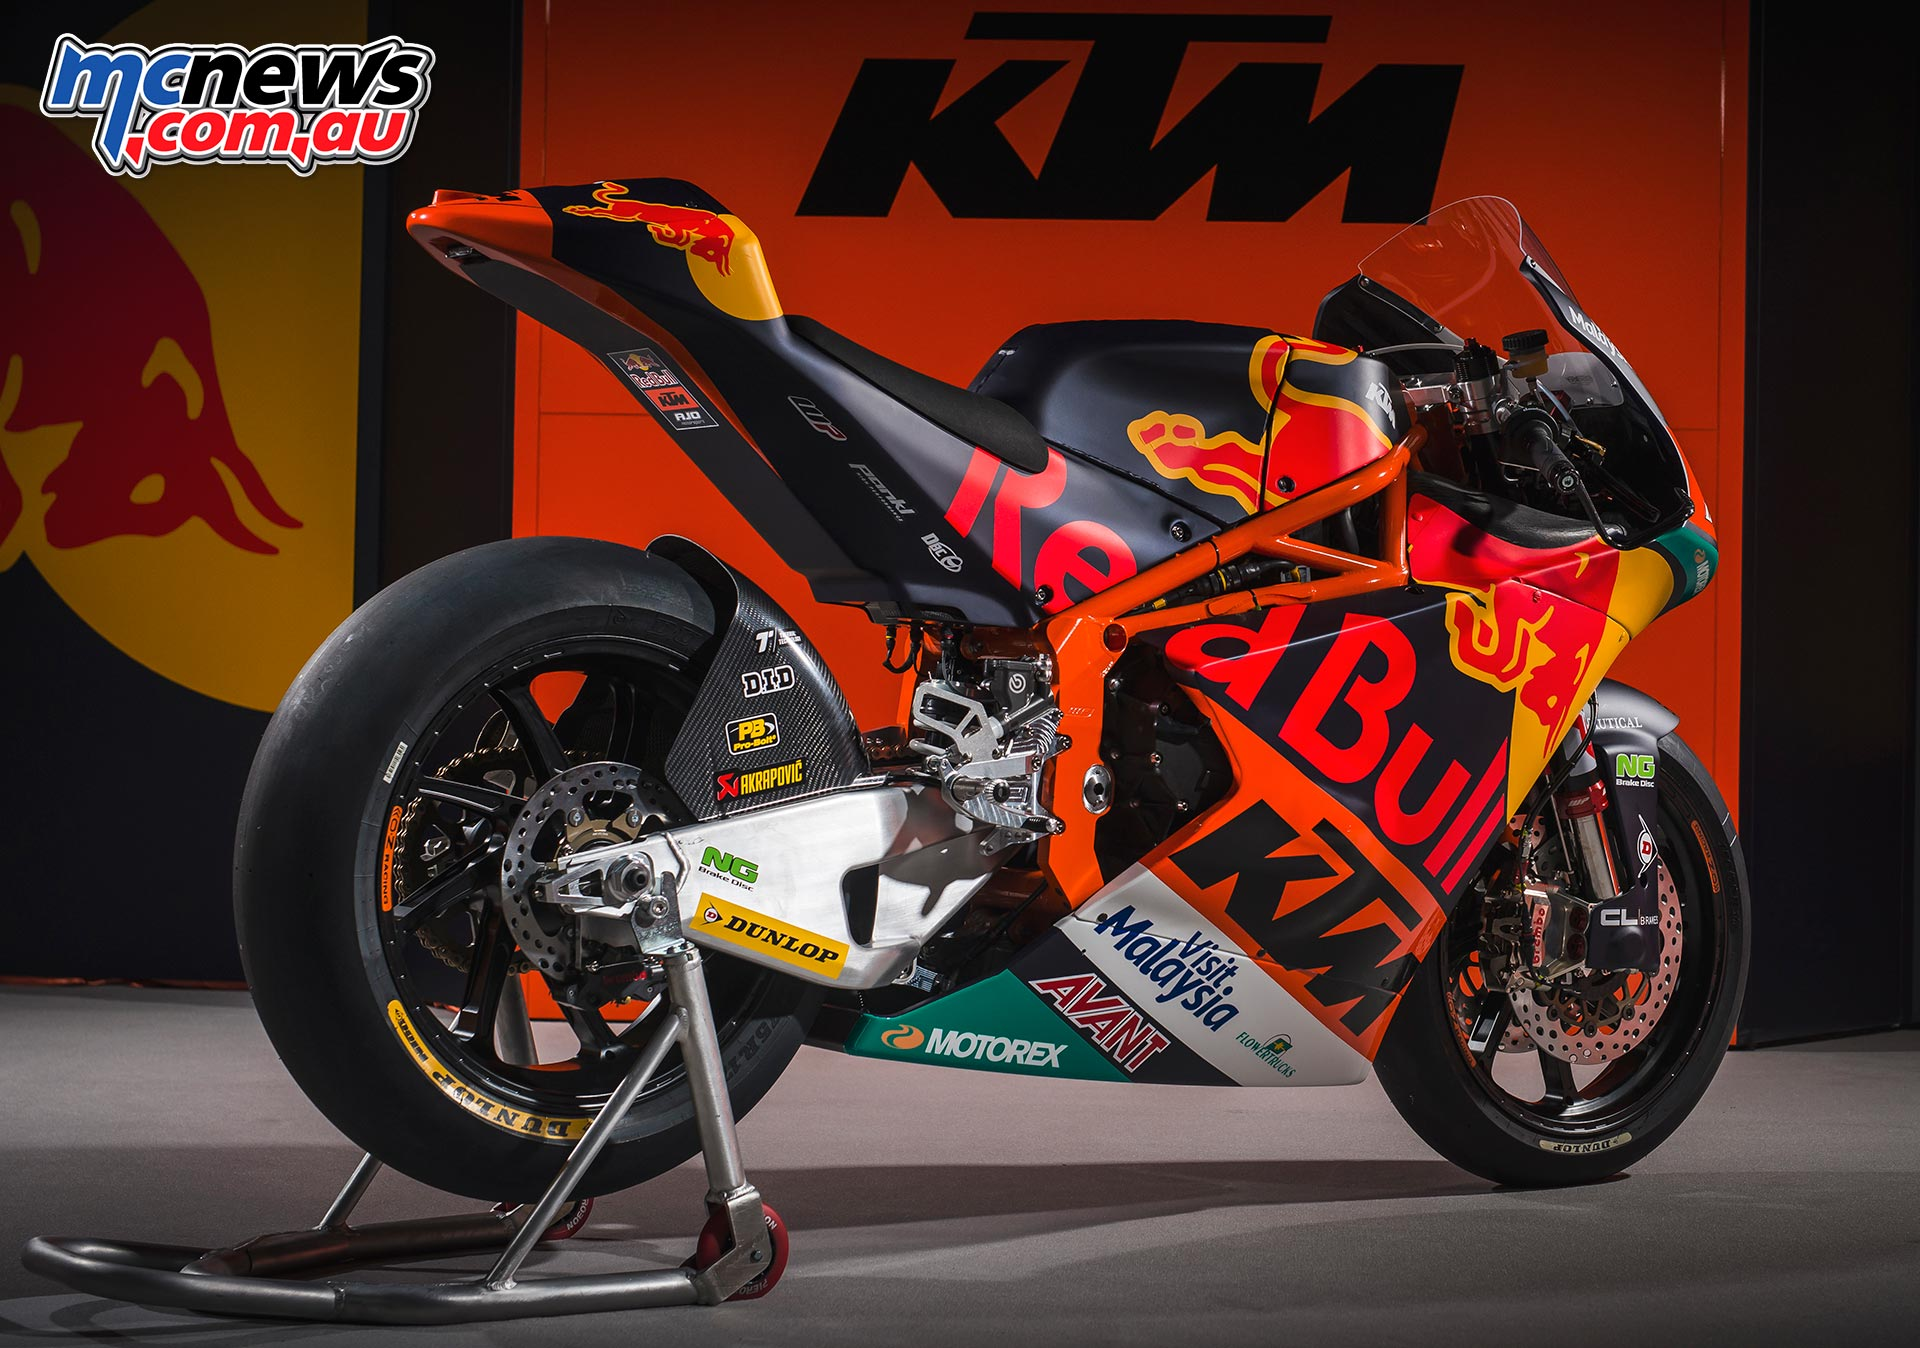 KTM Team Launch MotoGP | Moto2 | Moto3 | MCNews.com.au